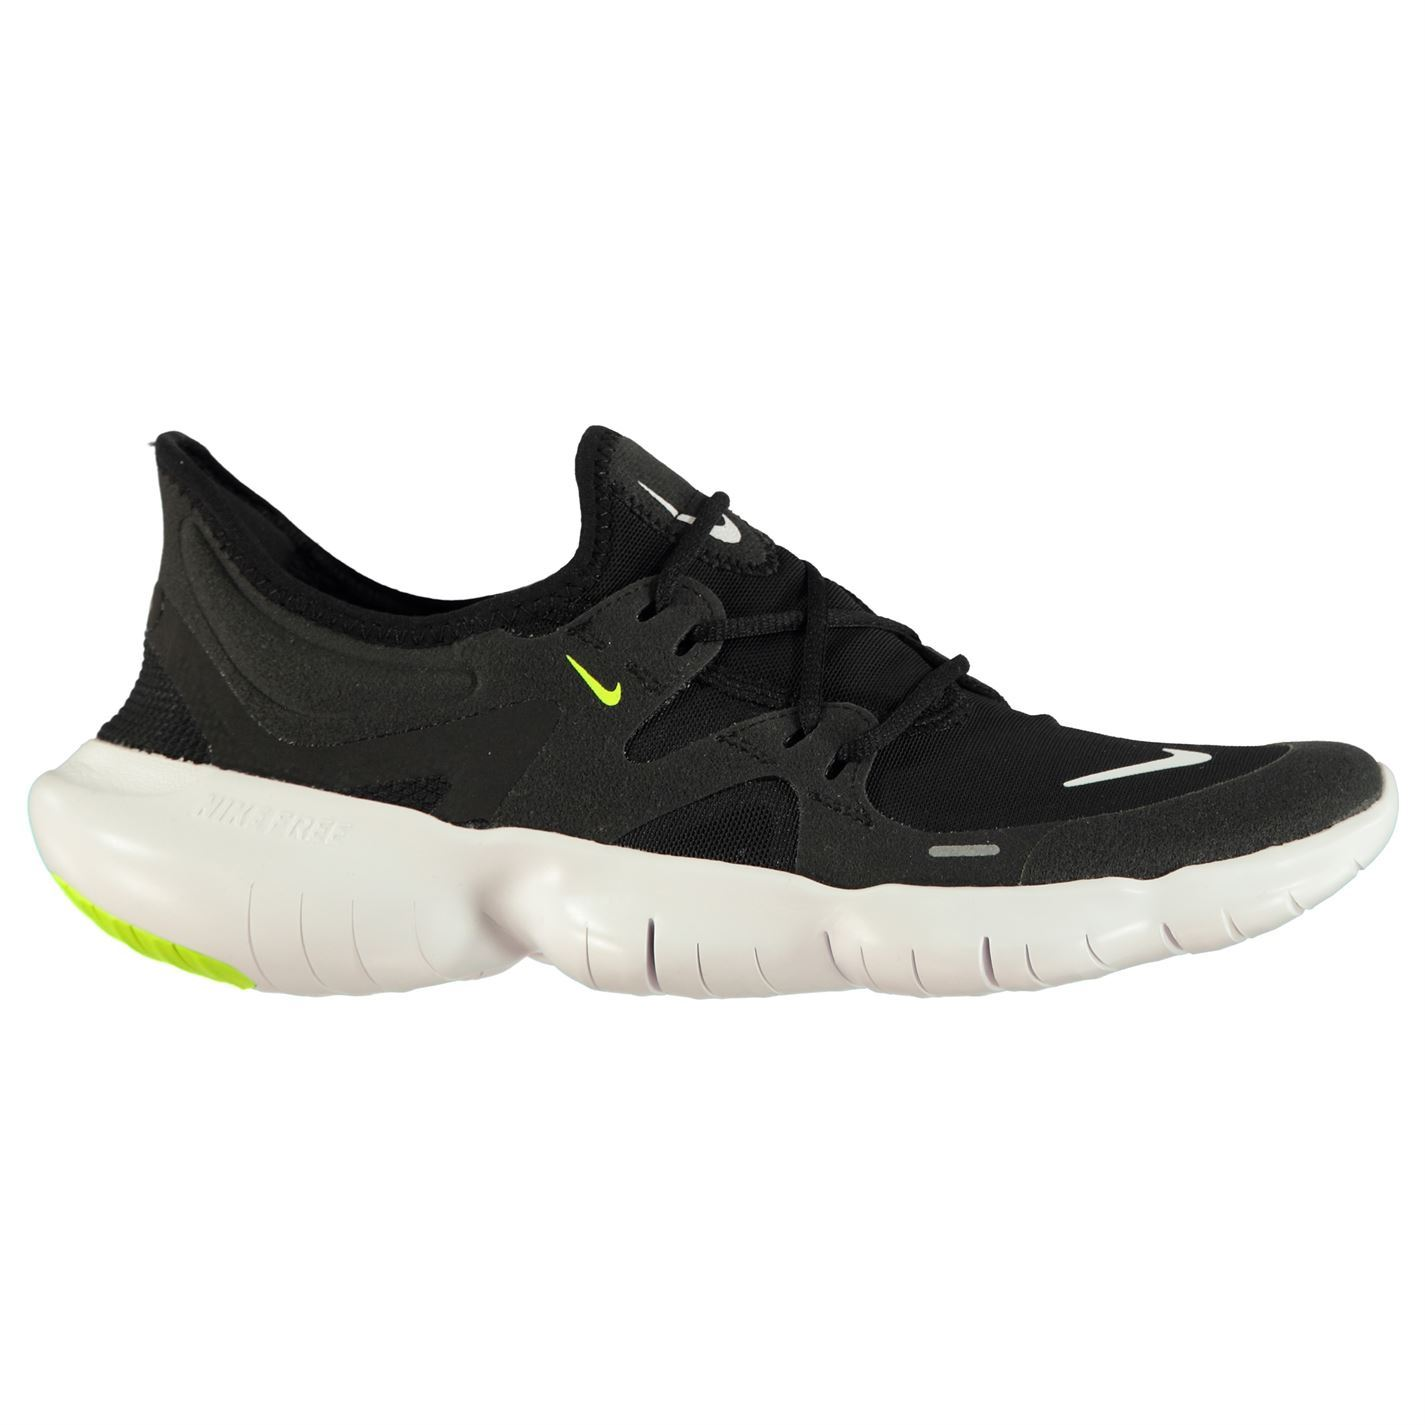 Details about Nike Free Run 5.0 Mens Running Shoes Trainers Footwear Sneakers